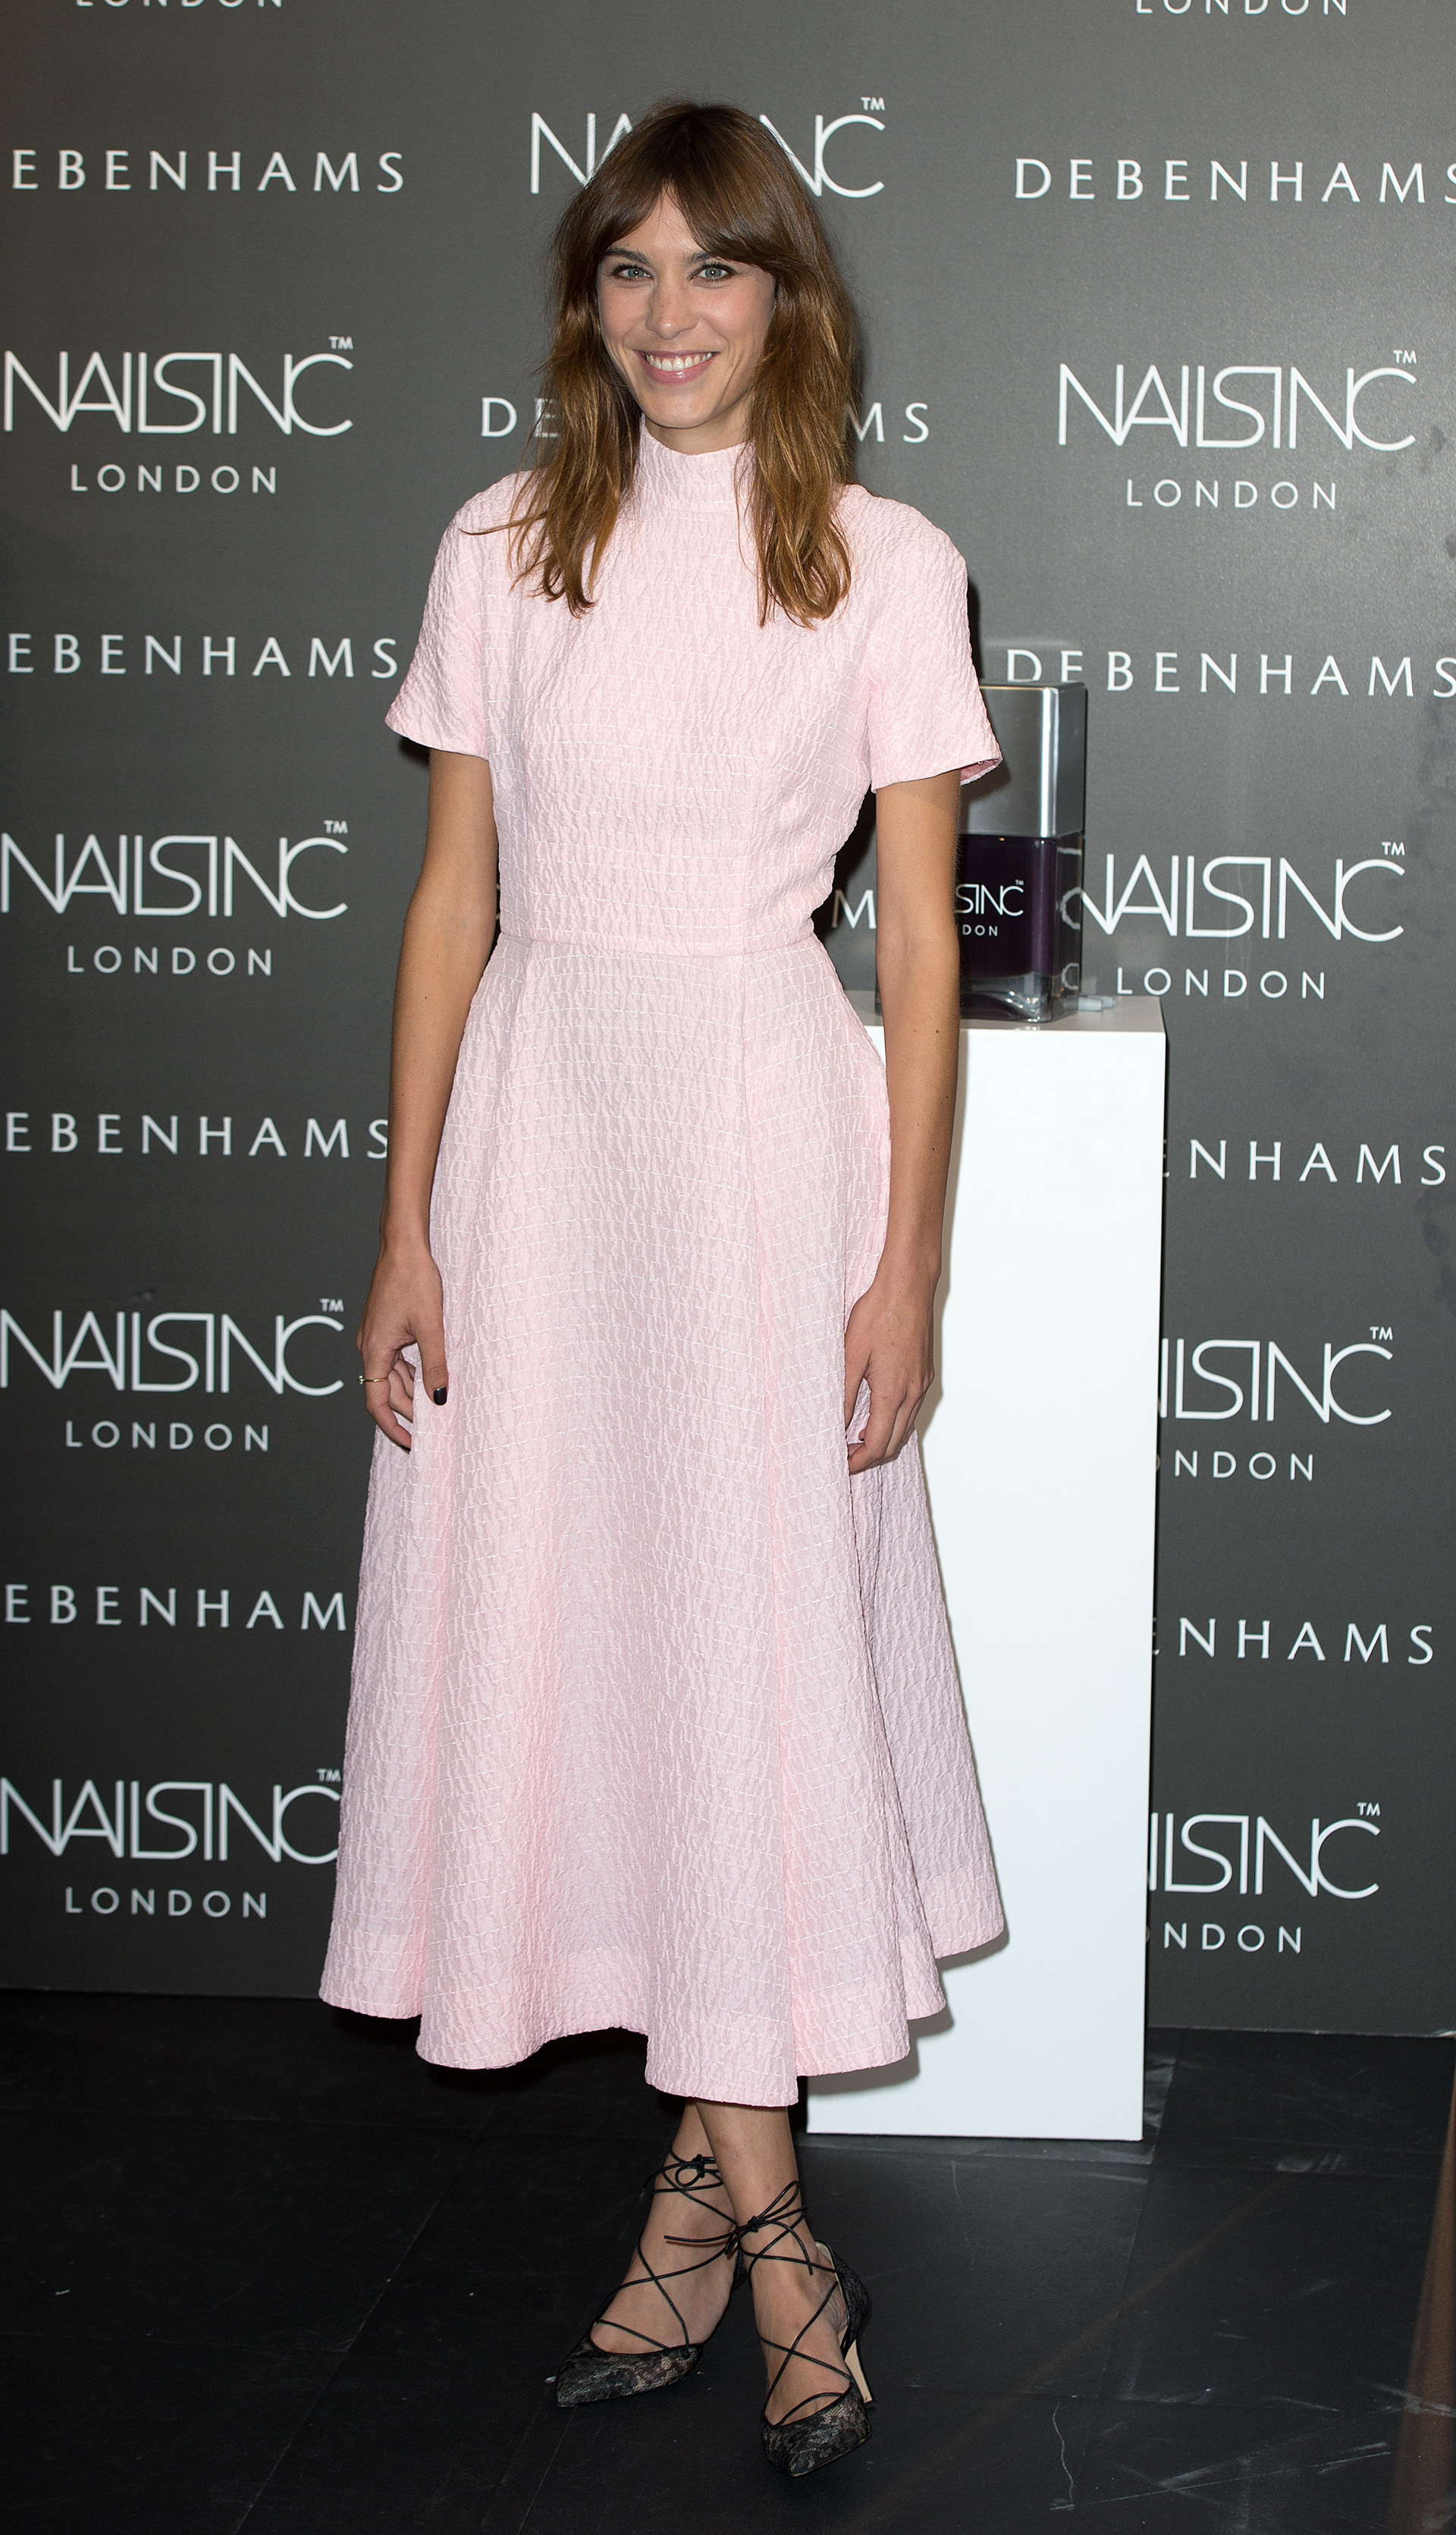 Weekly outfit obsessions: Taylor Schilling and Alexa Chung try menswear